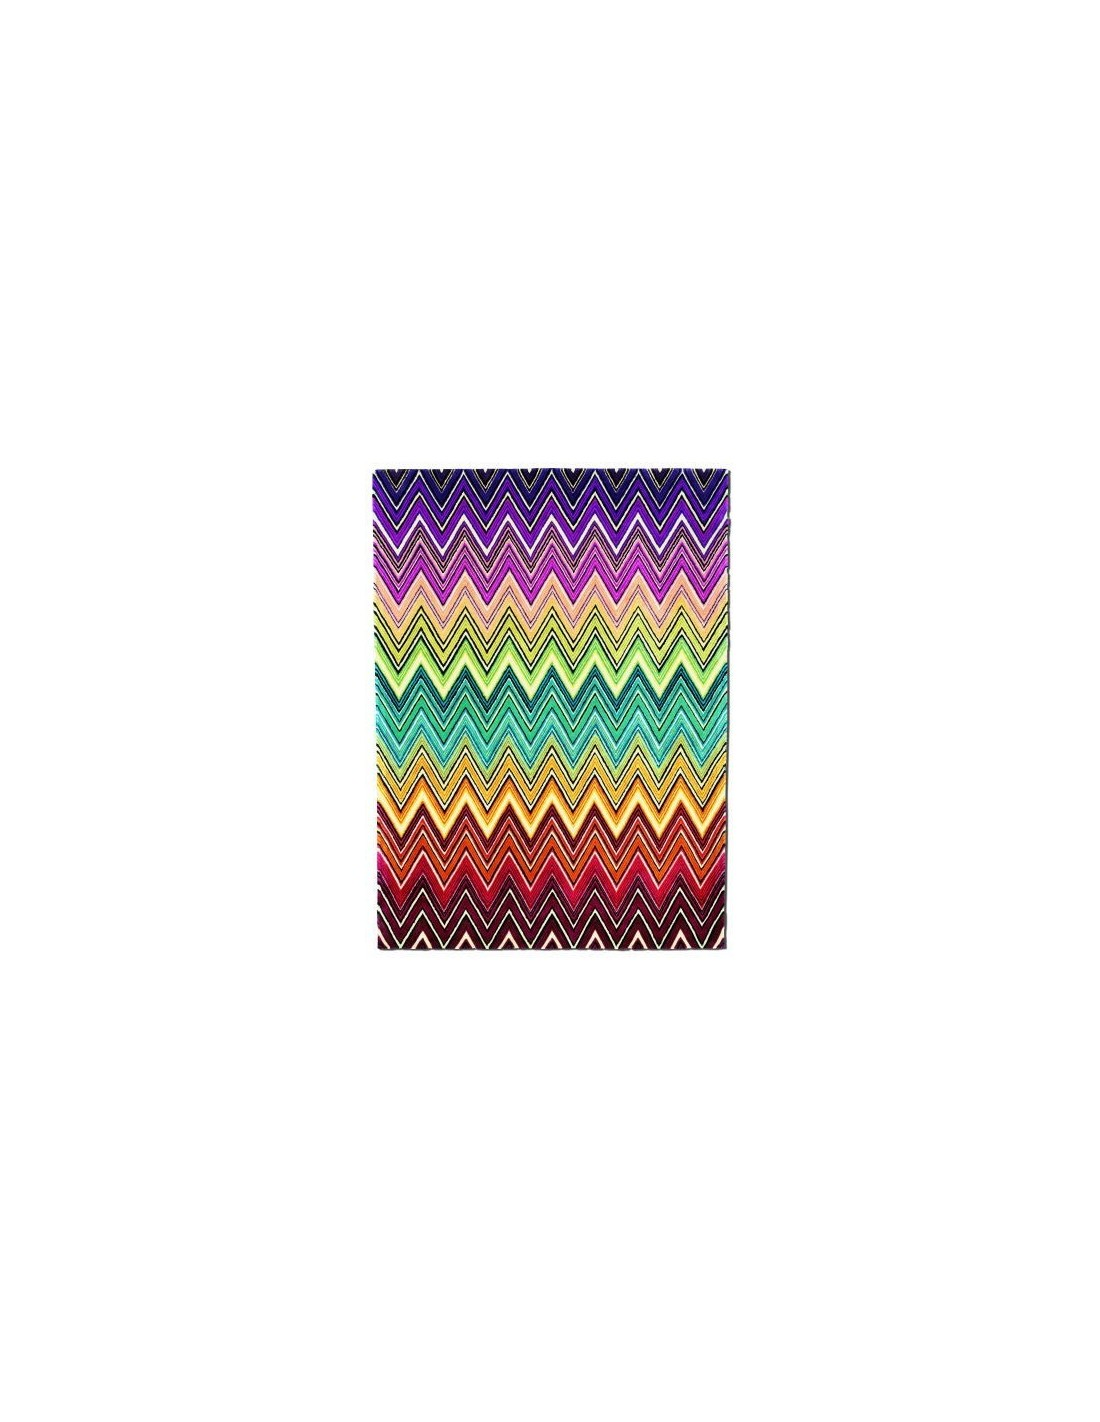 contemporary rug tapis missoni home liuwa multicolour t16 designed by missoni home. Black Bedroom Furniture Sets. Home Design Ideas